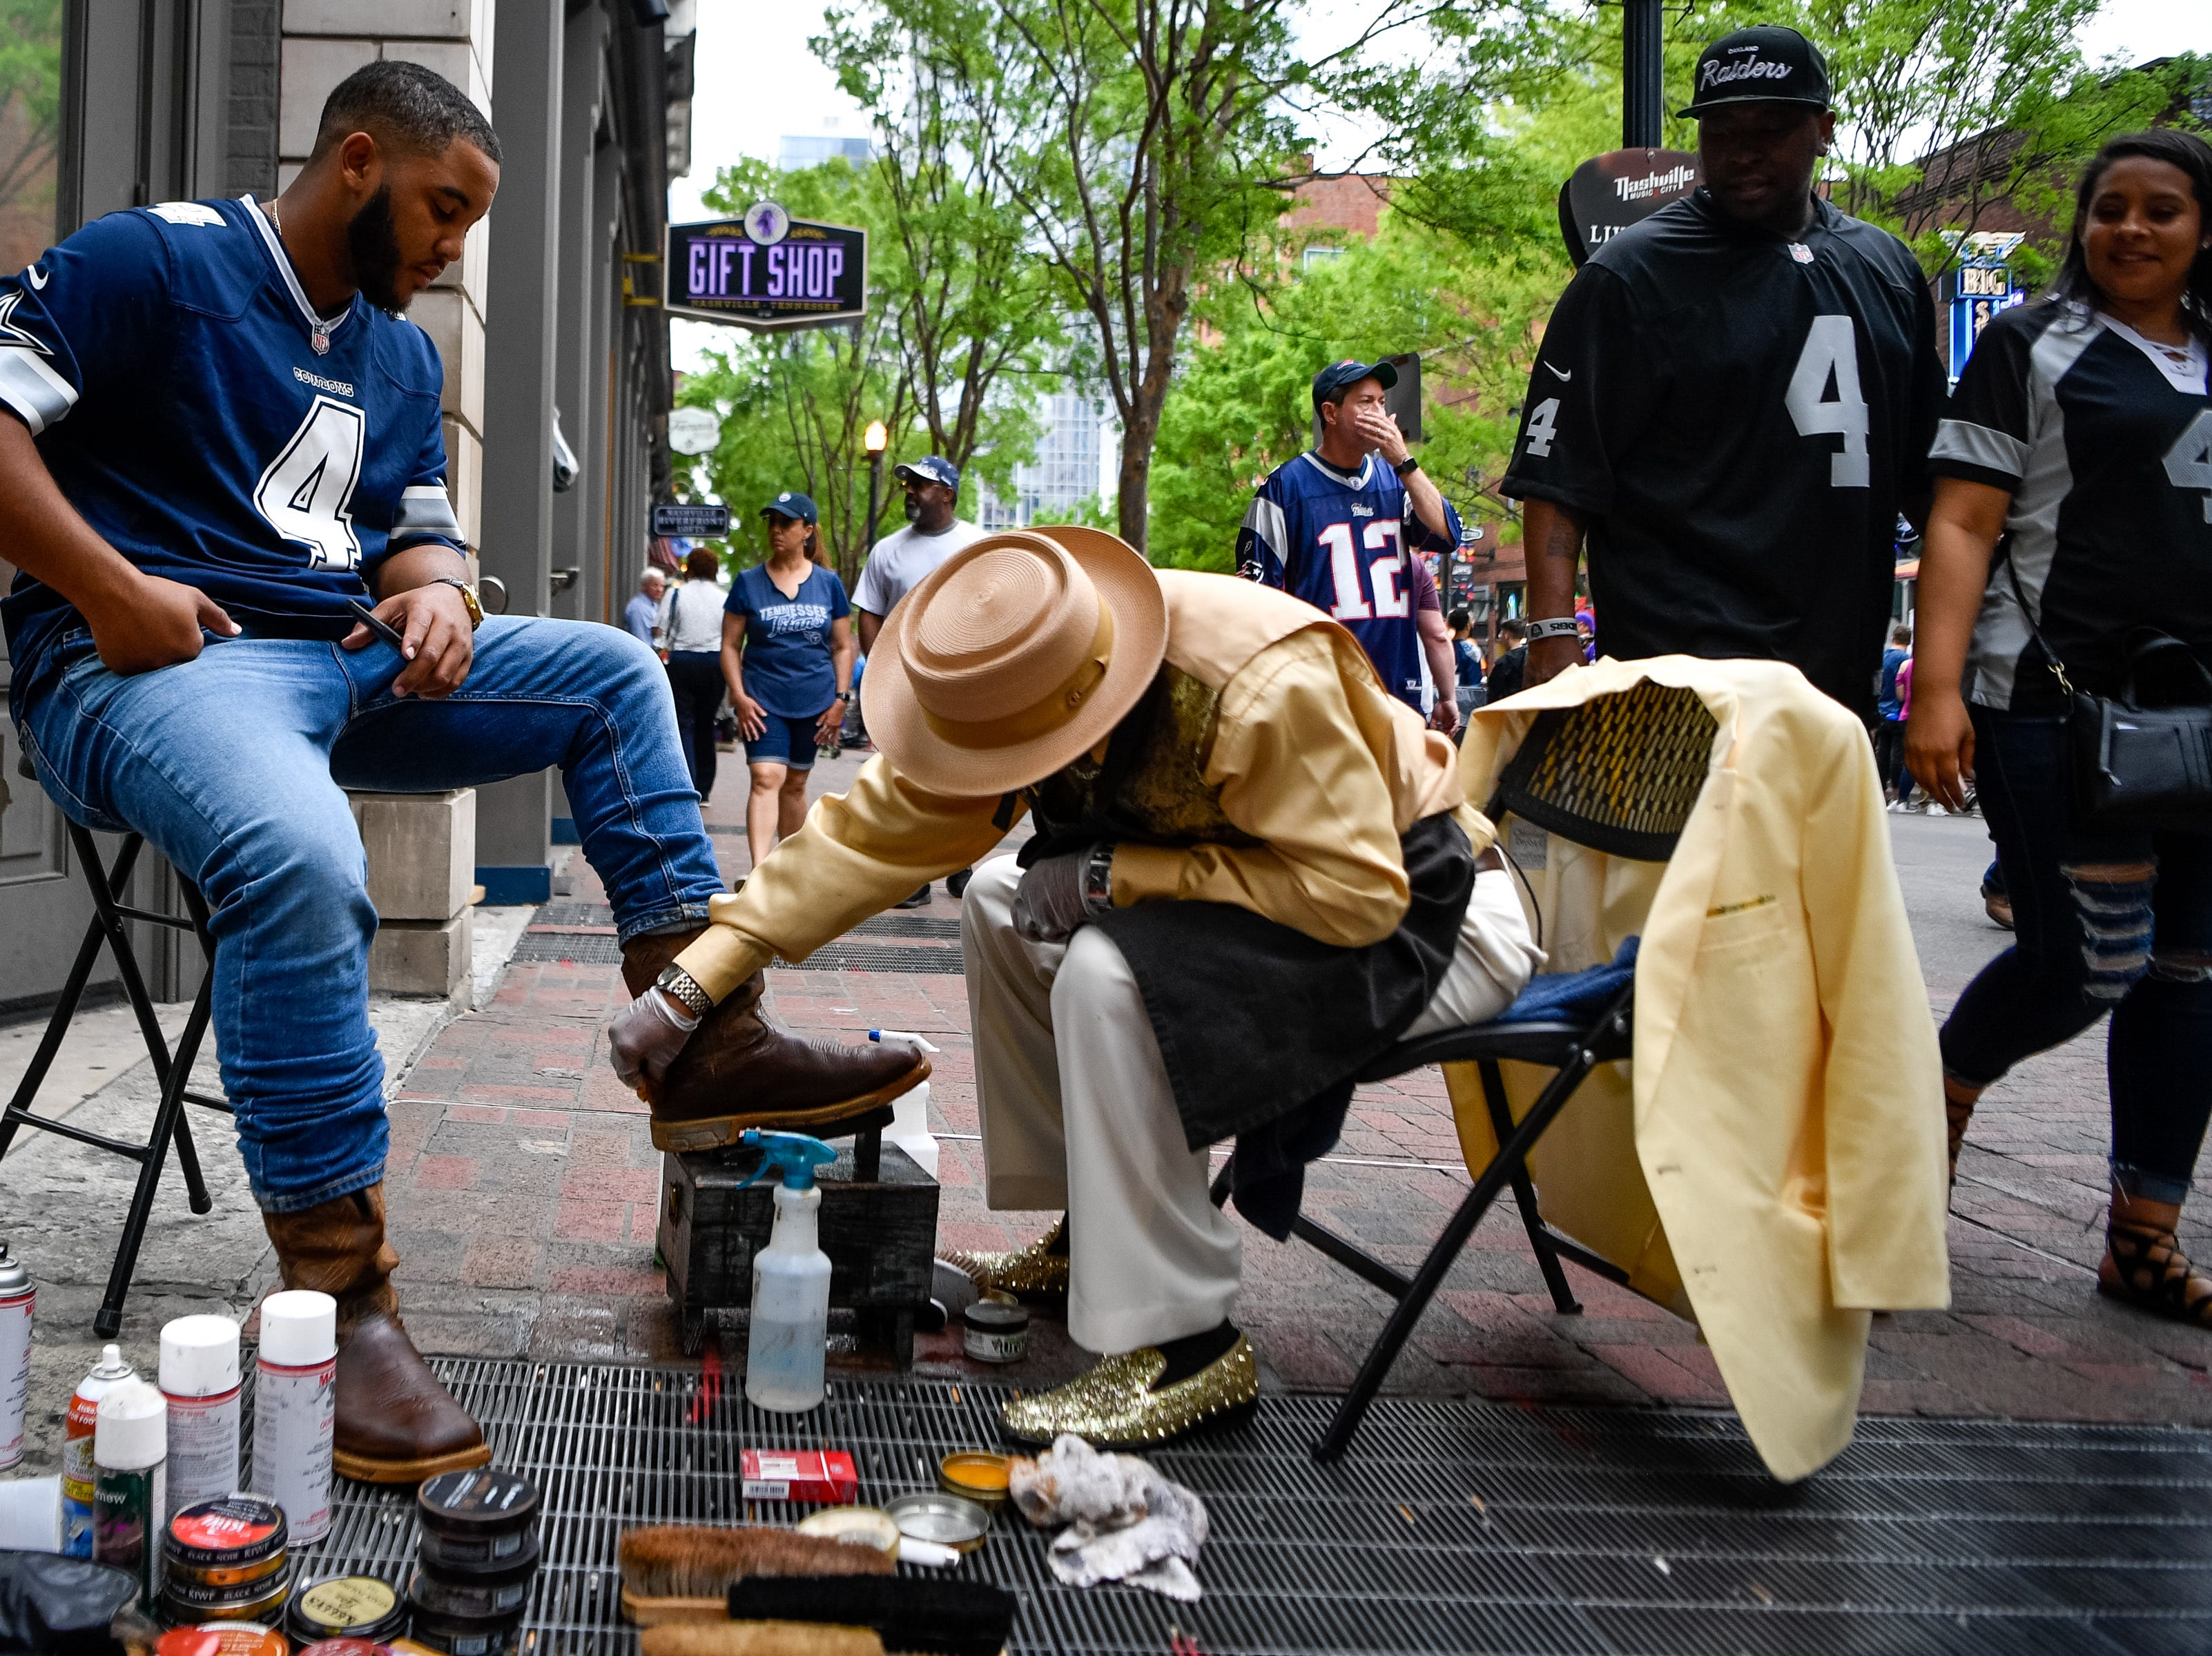 Clete Bridges shines David Prince's boots just off Lower Broadway during the NFL Draft Thursday, April 25, 2019, in Nashville, Tenn.